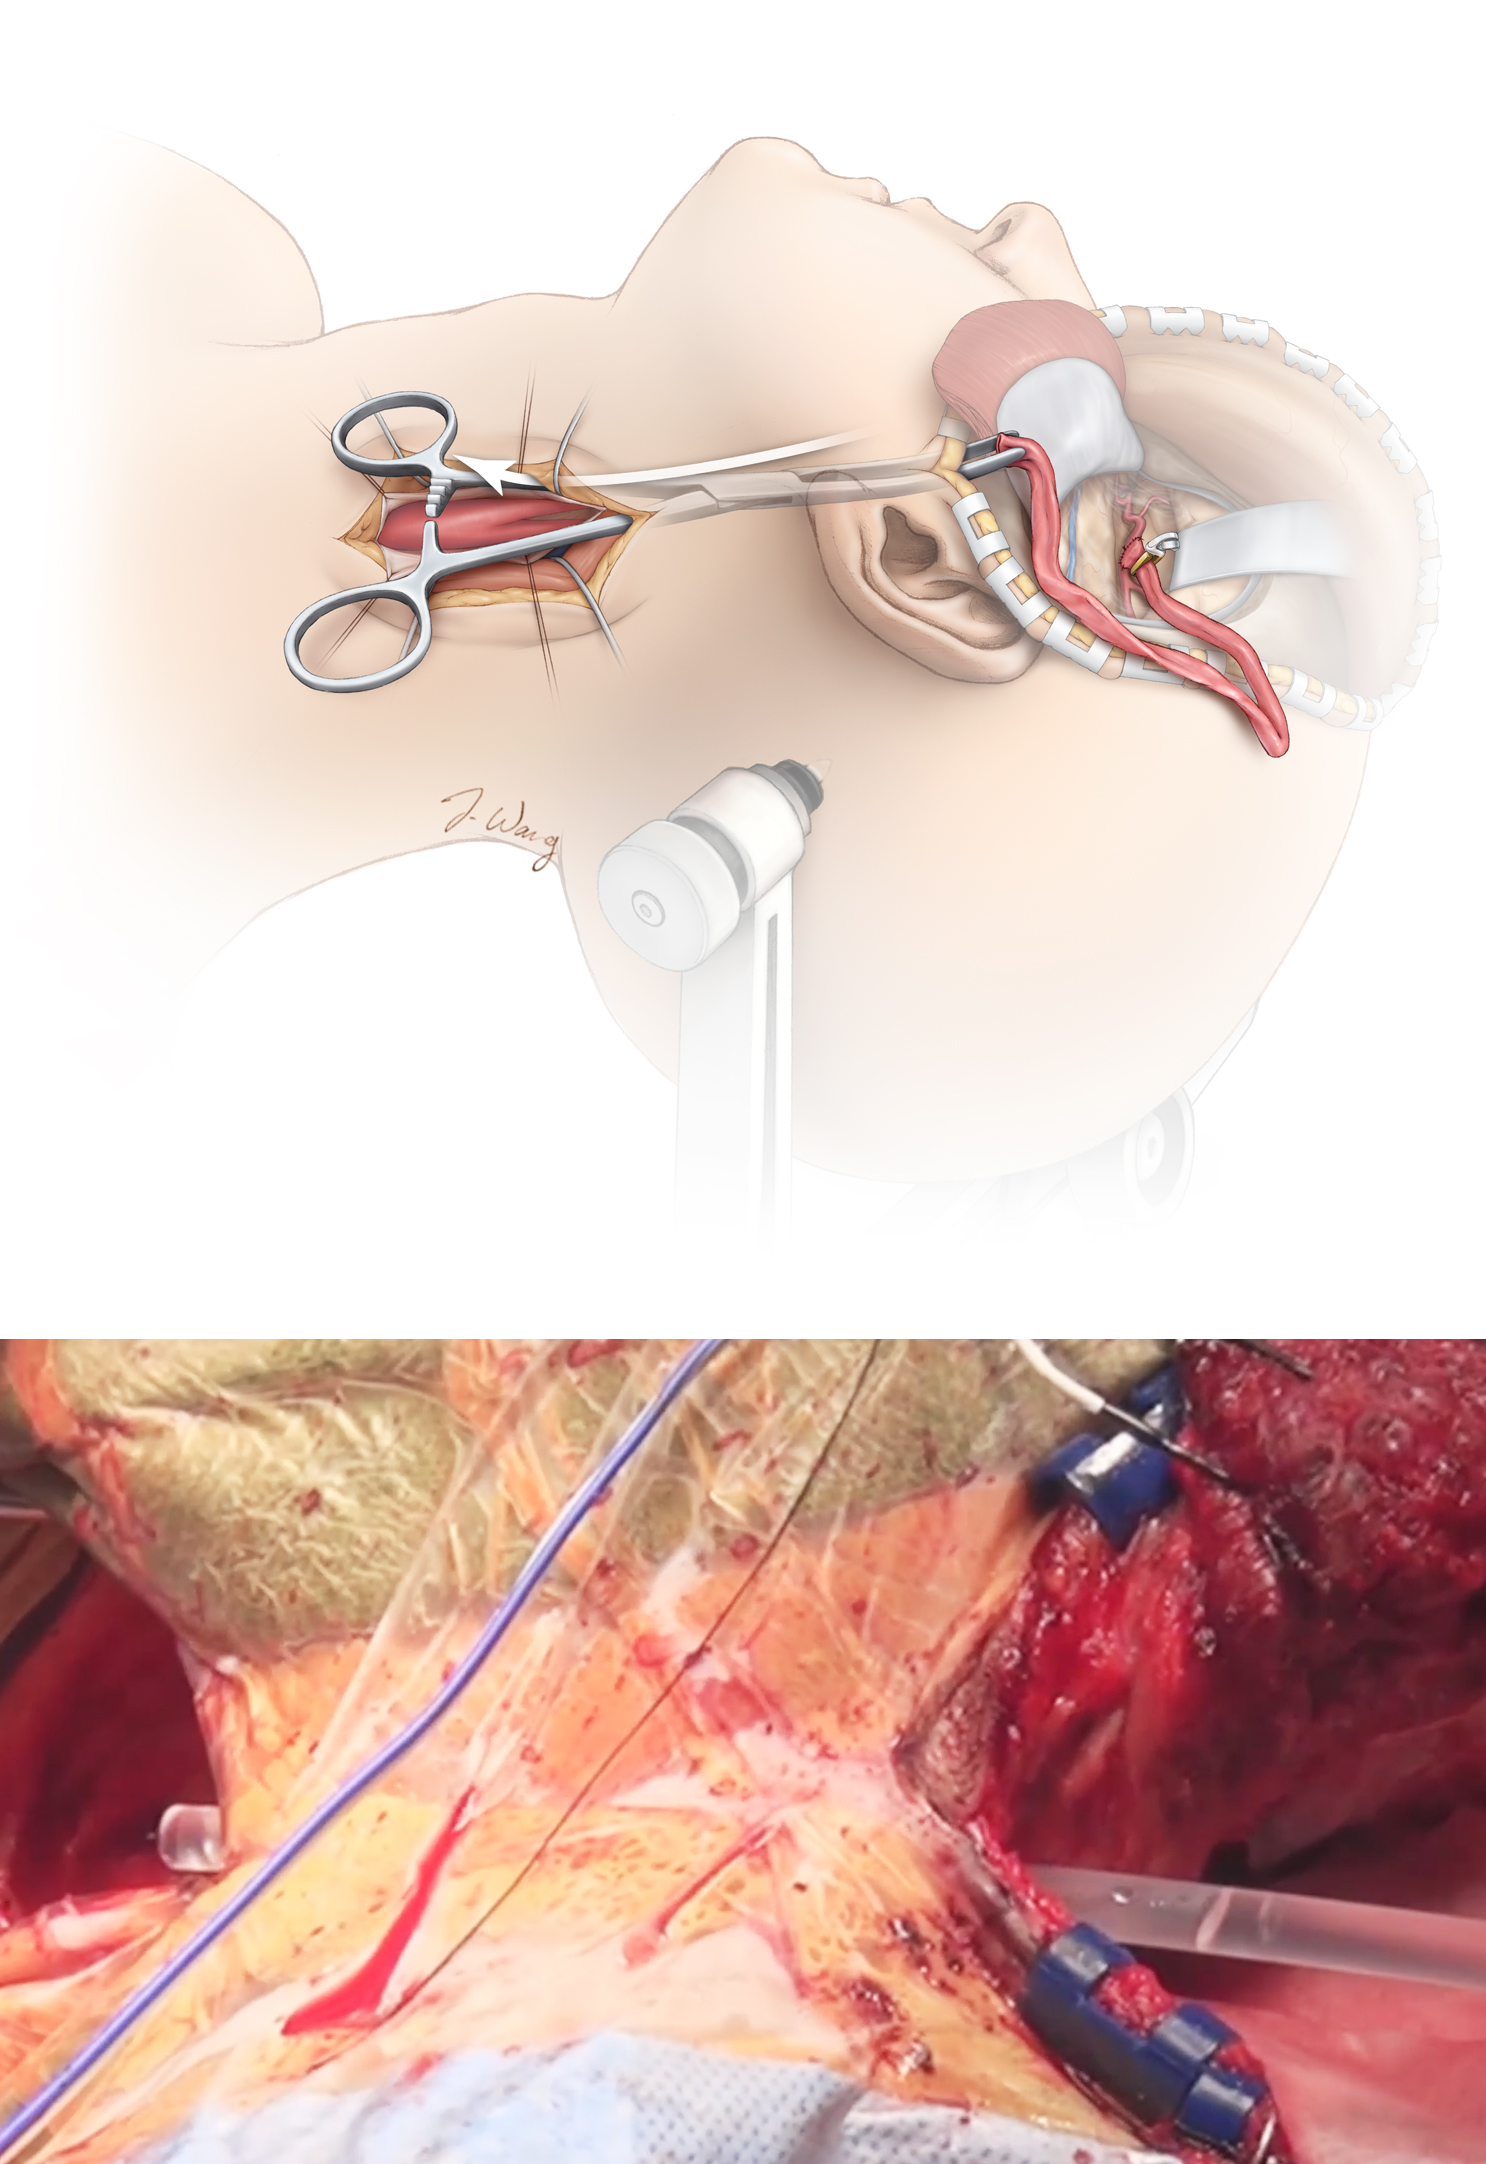 Figure 8: The graft is tunneled from the cranial operative field into the cervical field using a pediatric chest tube. A notch is drilled in the zygoma before tunneling to prevent obstruction of the graft's lumen. A slit is cut in the chest tube to allow the graft to be placed directly inside the tube; this landmark also maintains and confirms the alignment of the tube during its passage and prevents the graft from twisting. The tube is pulled through from the cervical field and the graft is removed from the tube.